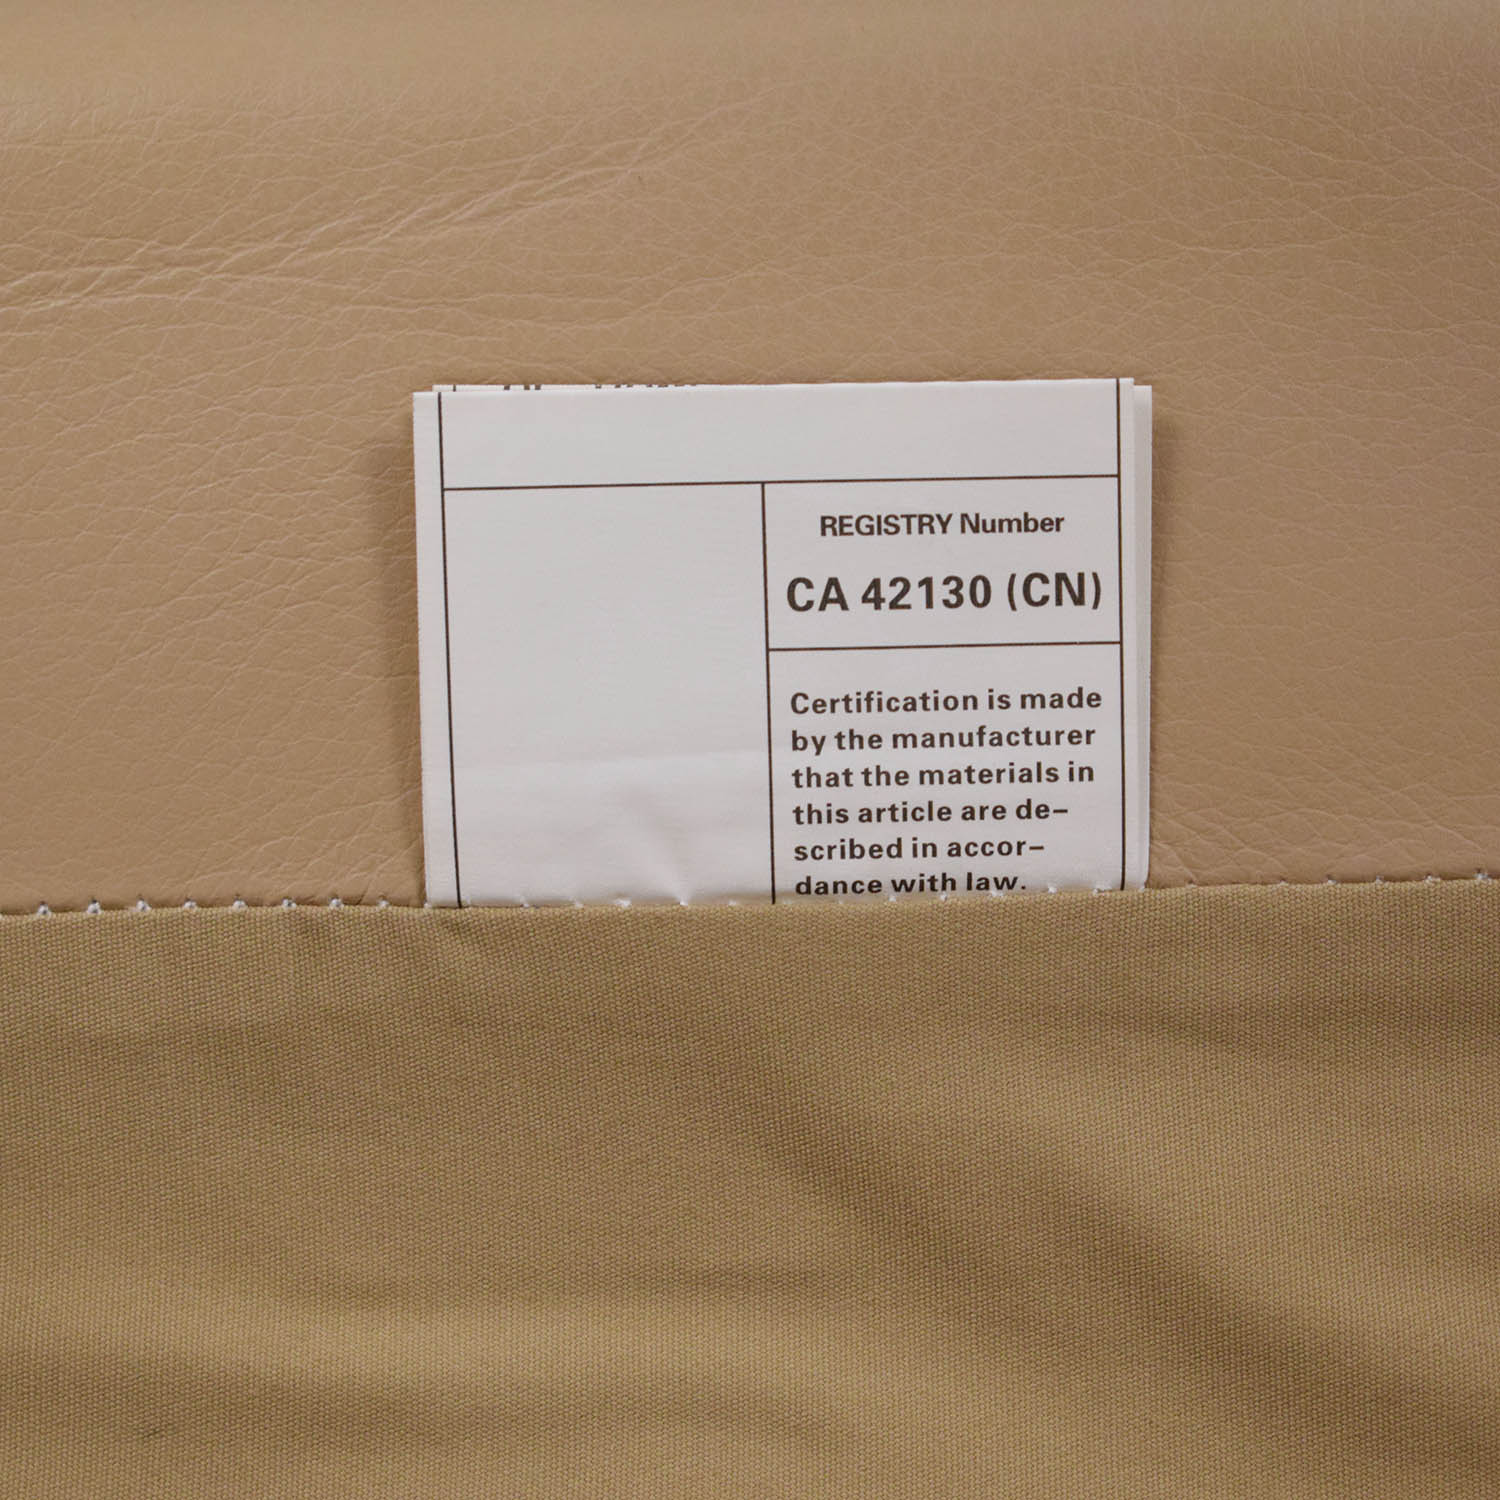 Inmod Inmod Florence Knoll Reproduction Leather Arm Chair beige